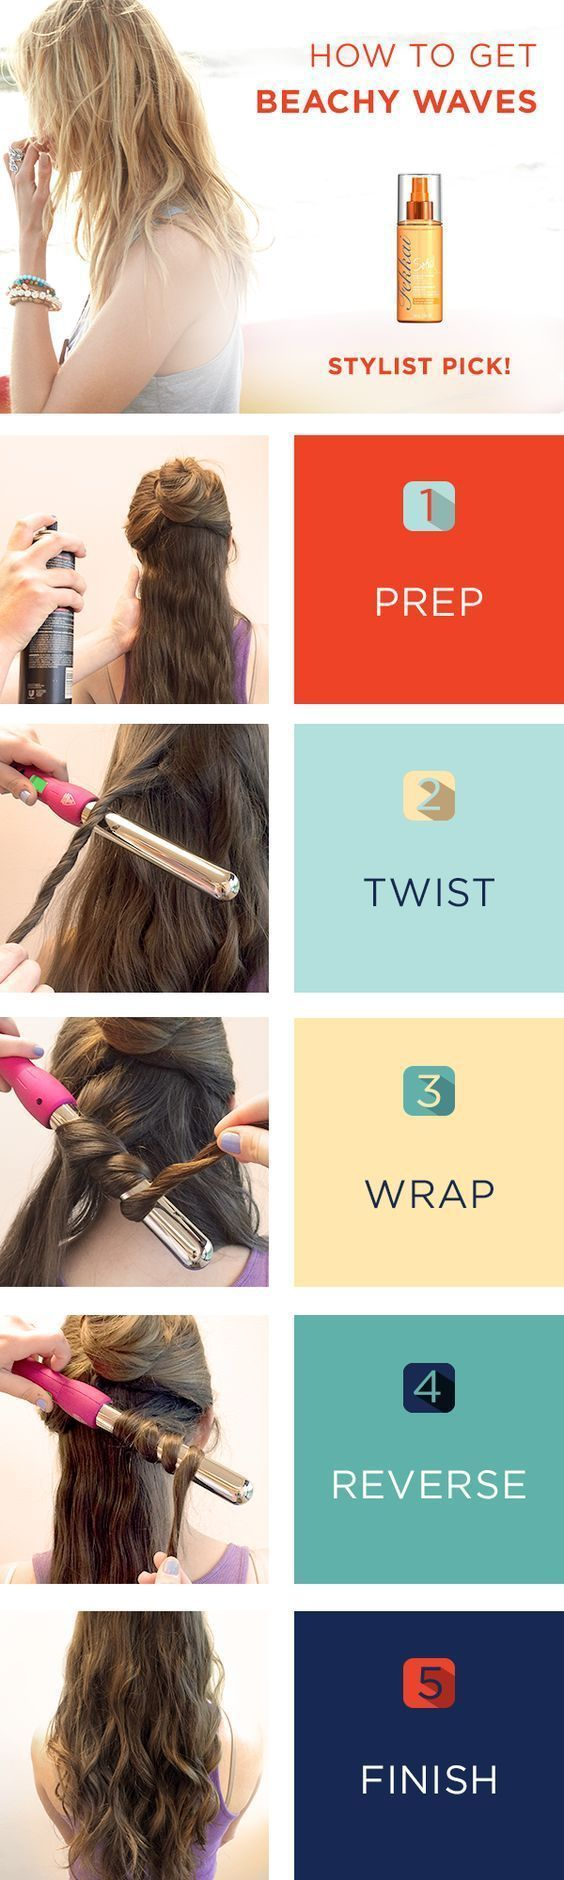 Wavy hair is supposed to be more effortless carefr #carefree #classpintag #effortless #explore #Hair